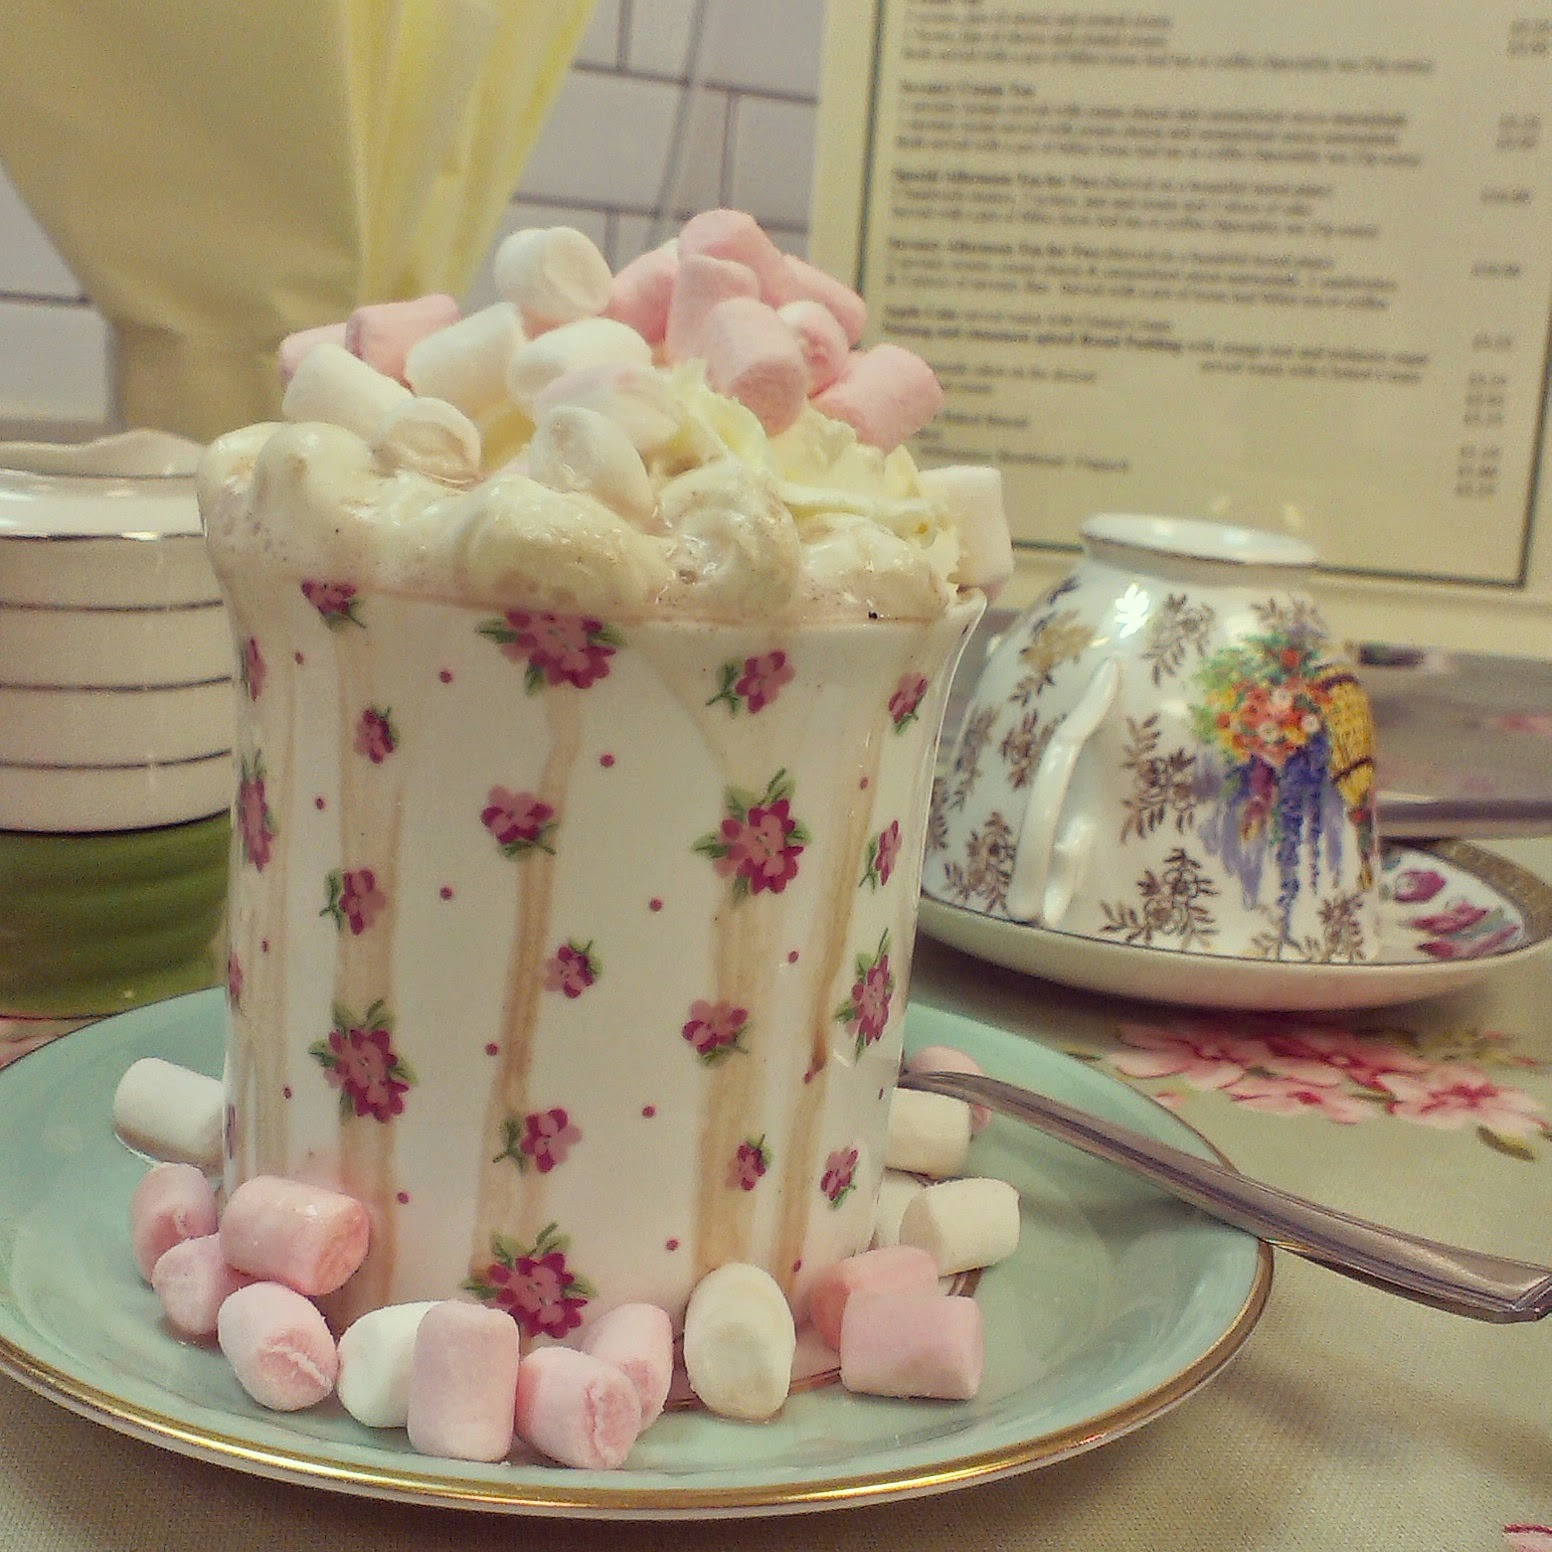 Hot Chocolate at Sally's Vintage Chic tea rooms, Minehead